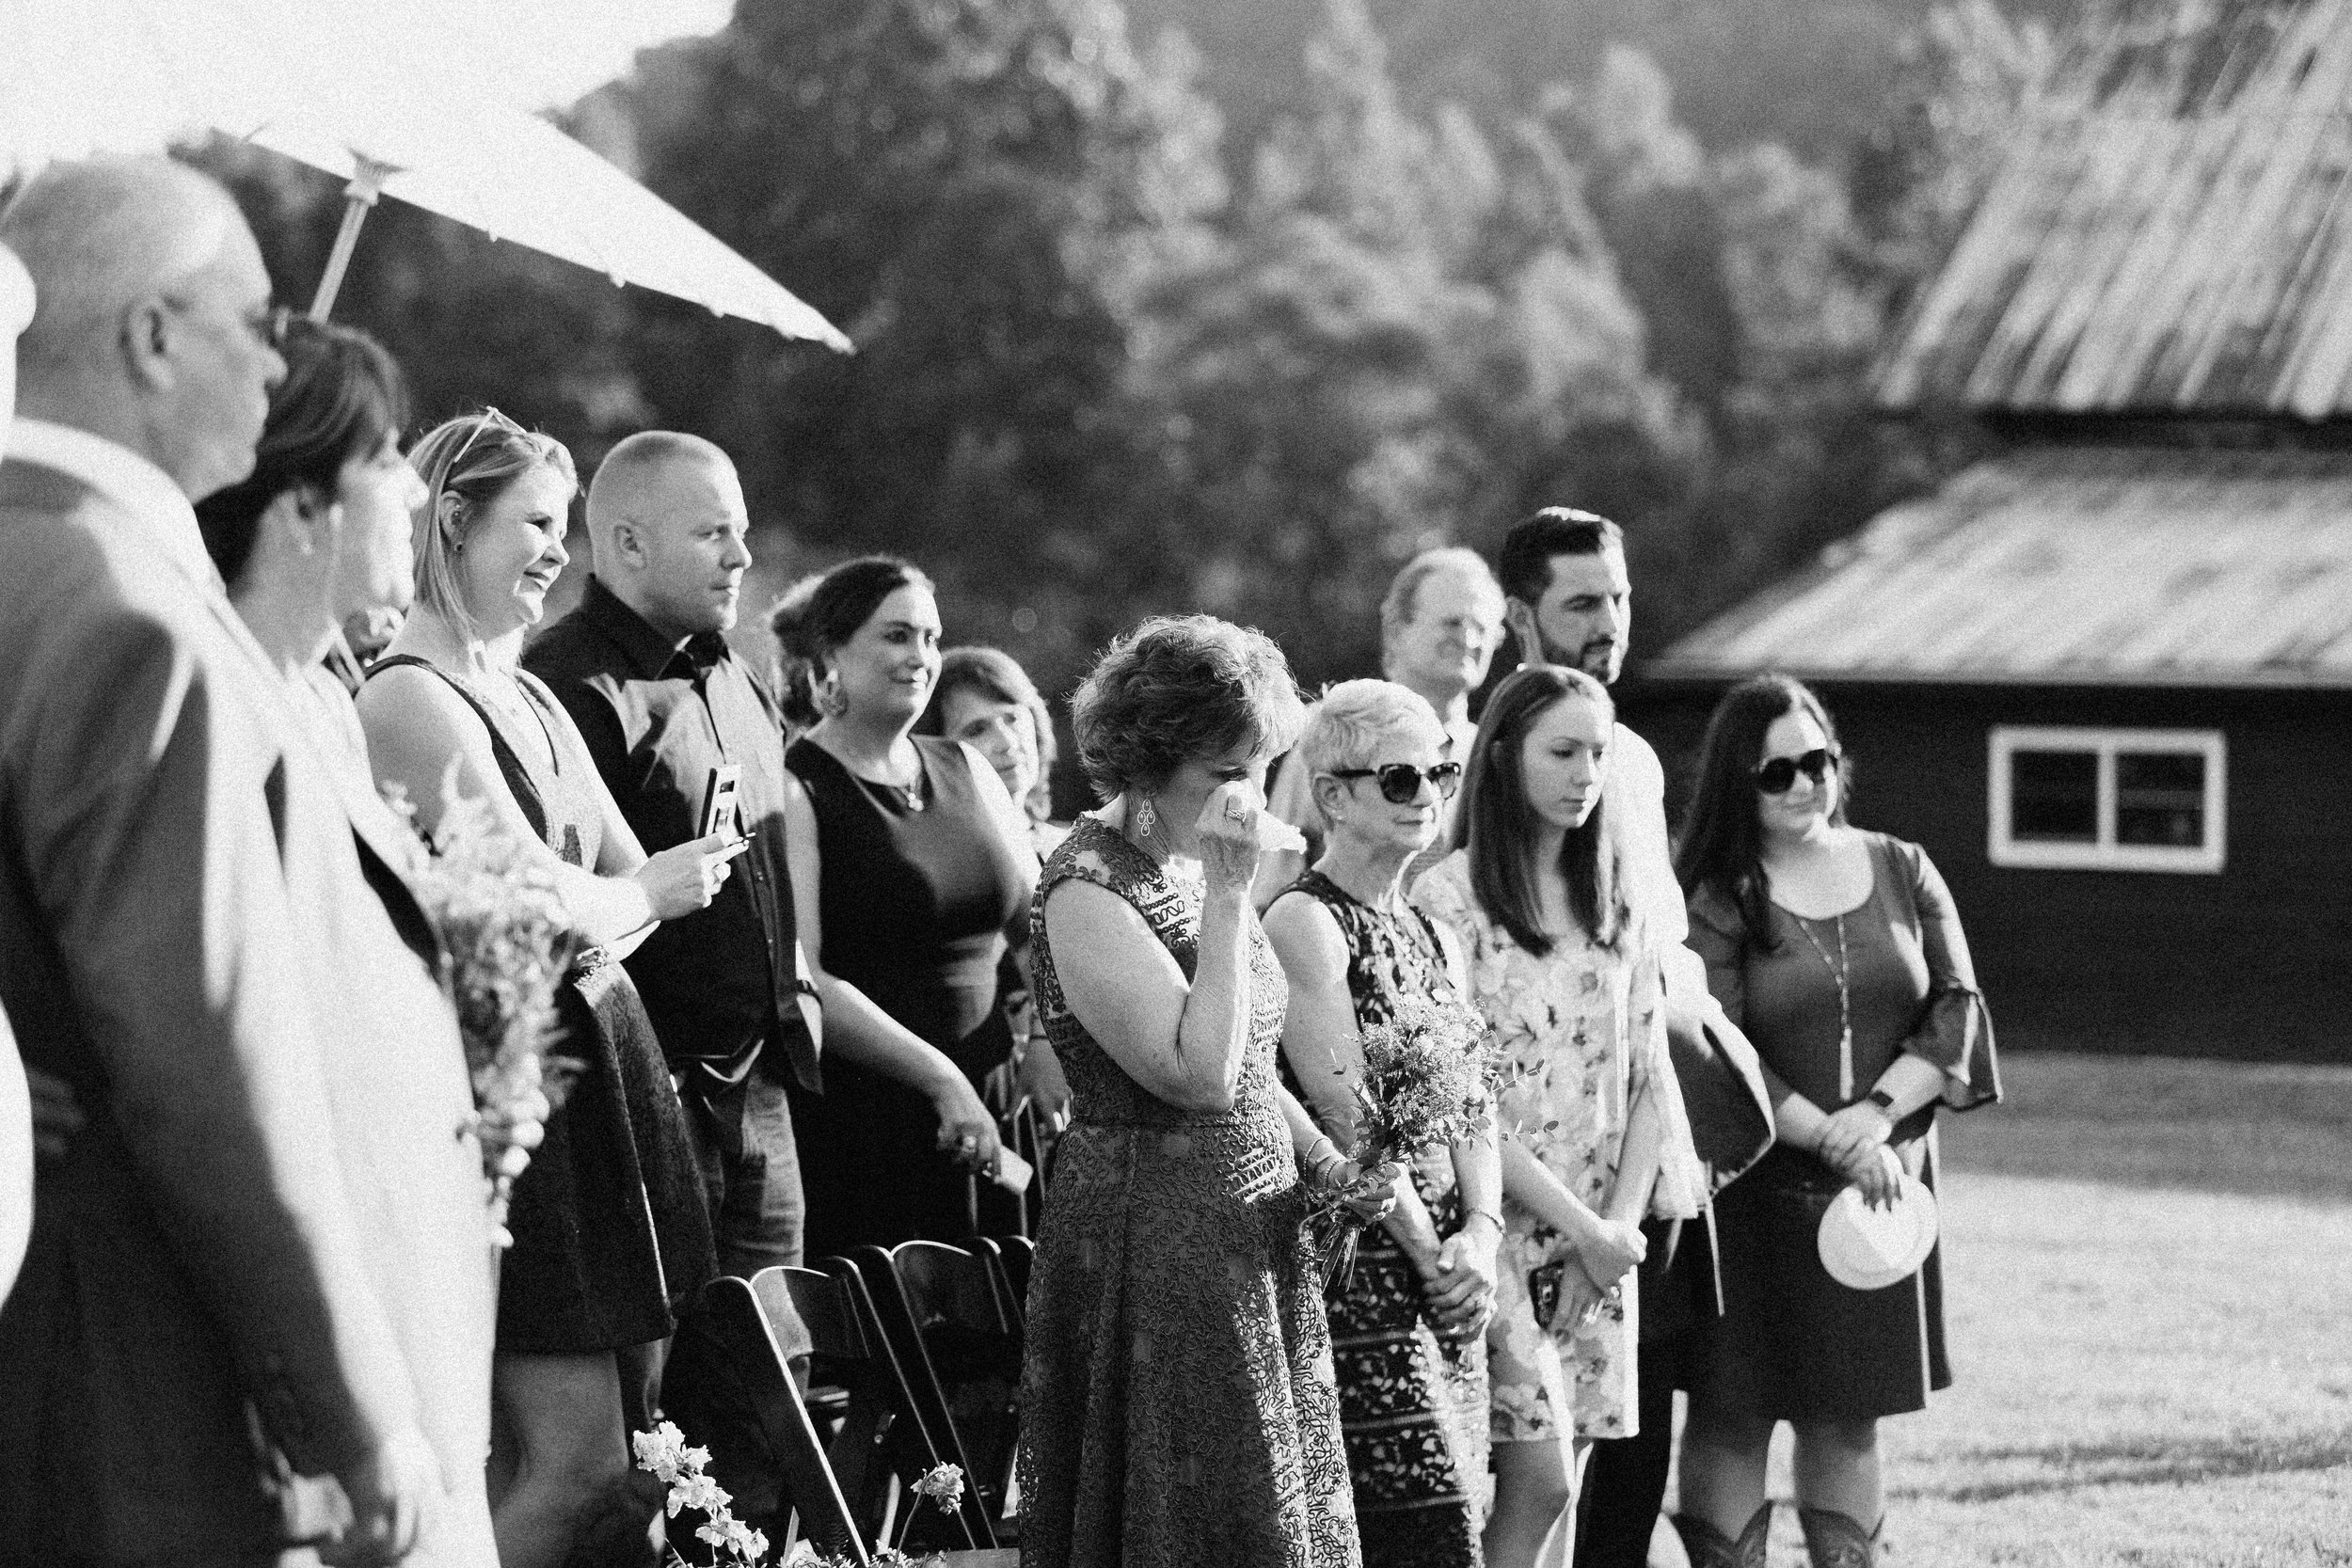 cleveland_georgia_mountain_laurel_farm_natural_classic_timeless_documentary_candid_wedding_emotional_photojournalism_river_west_1650.jpg